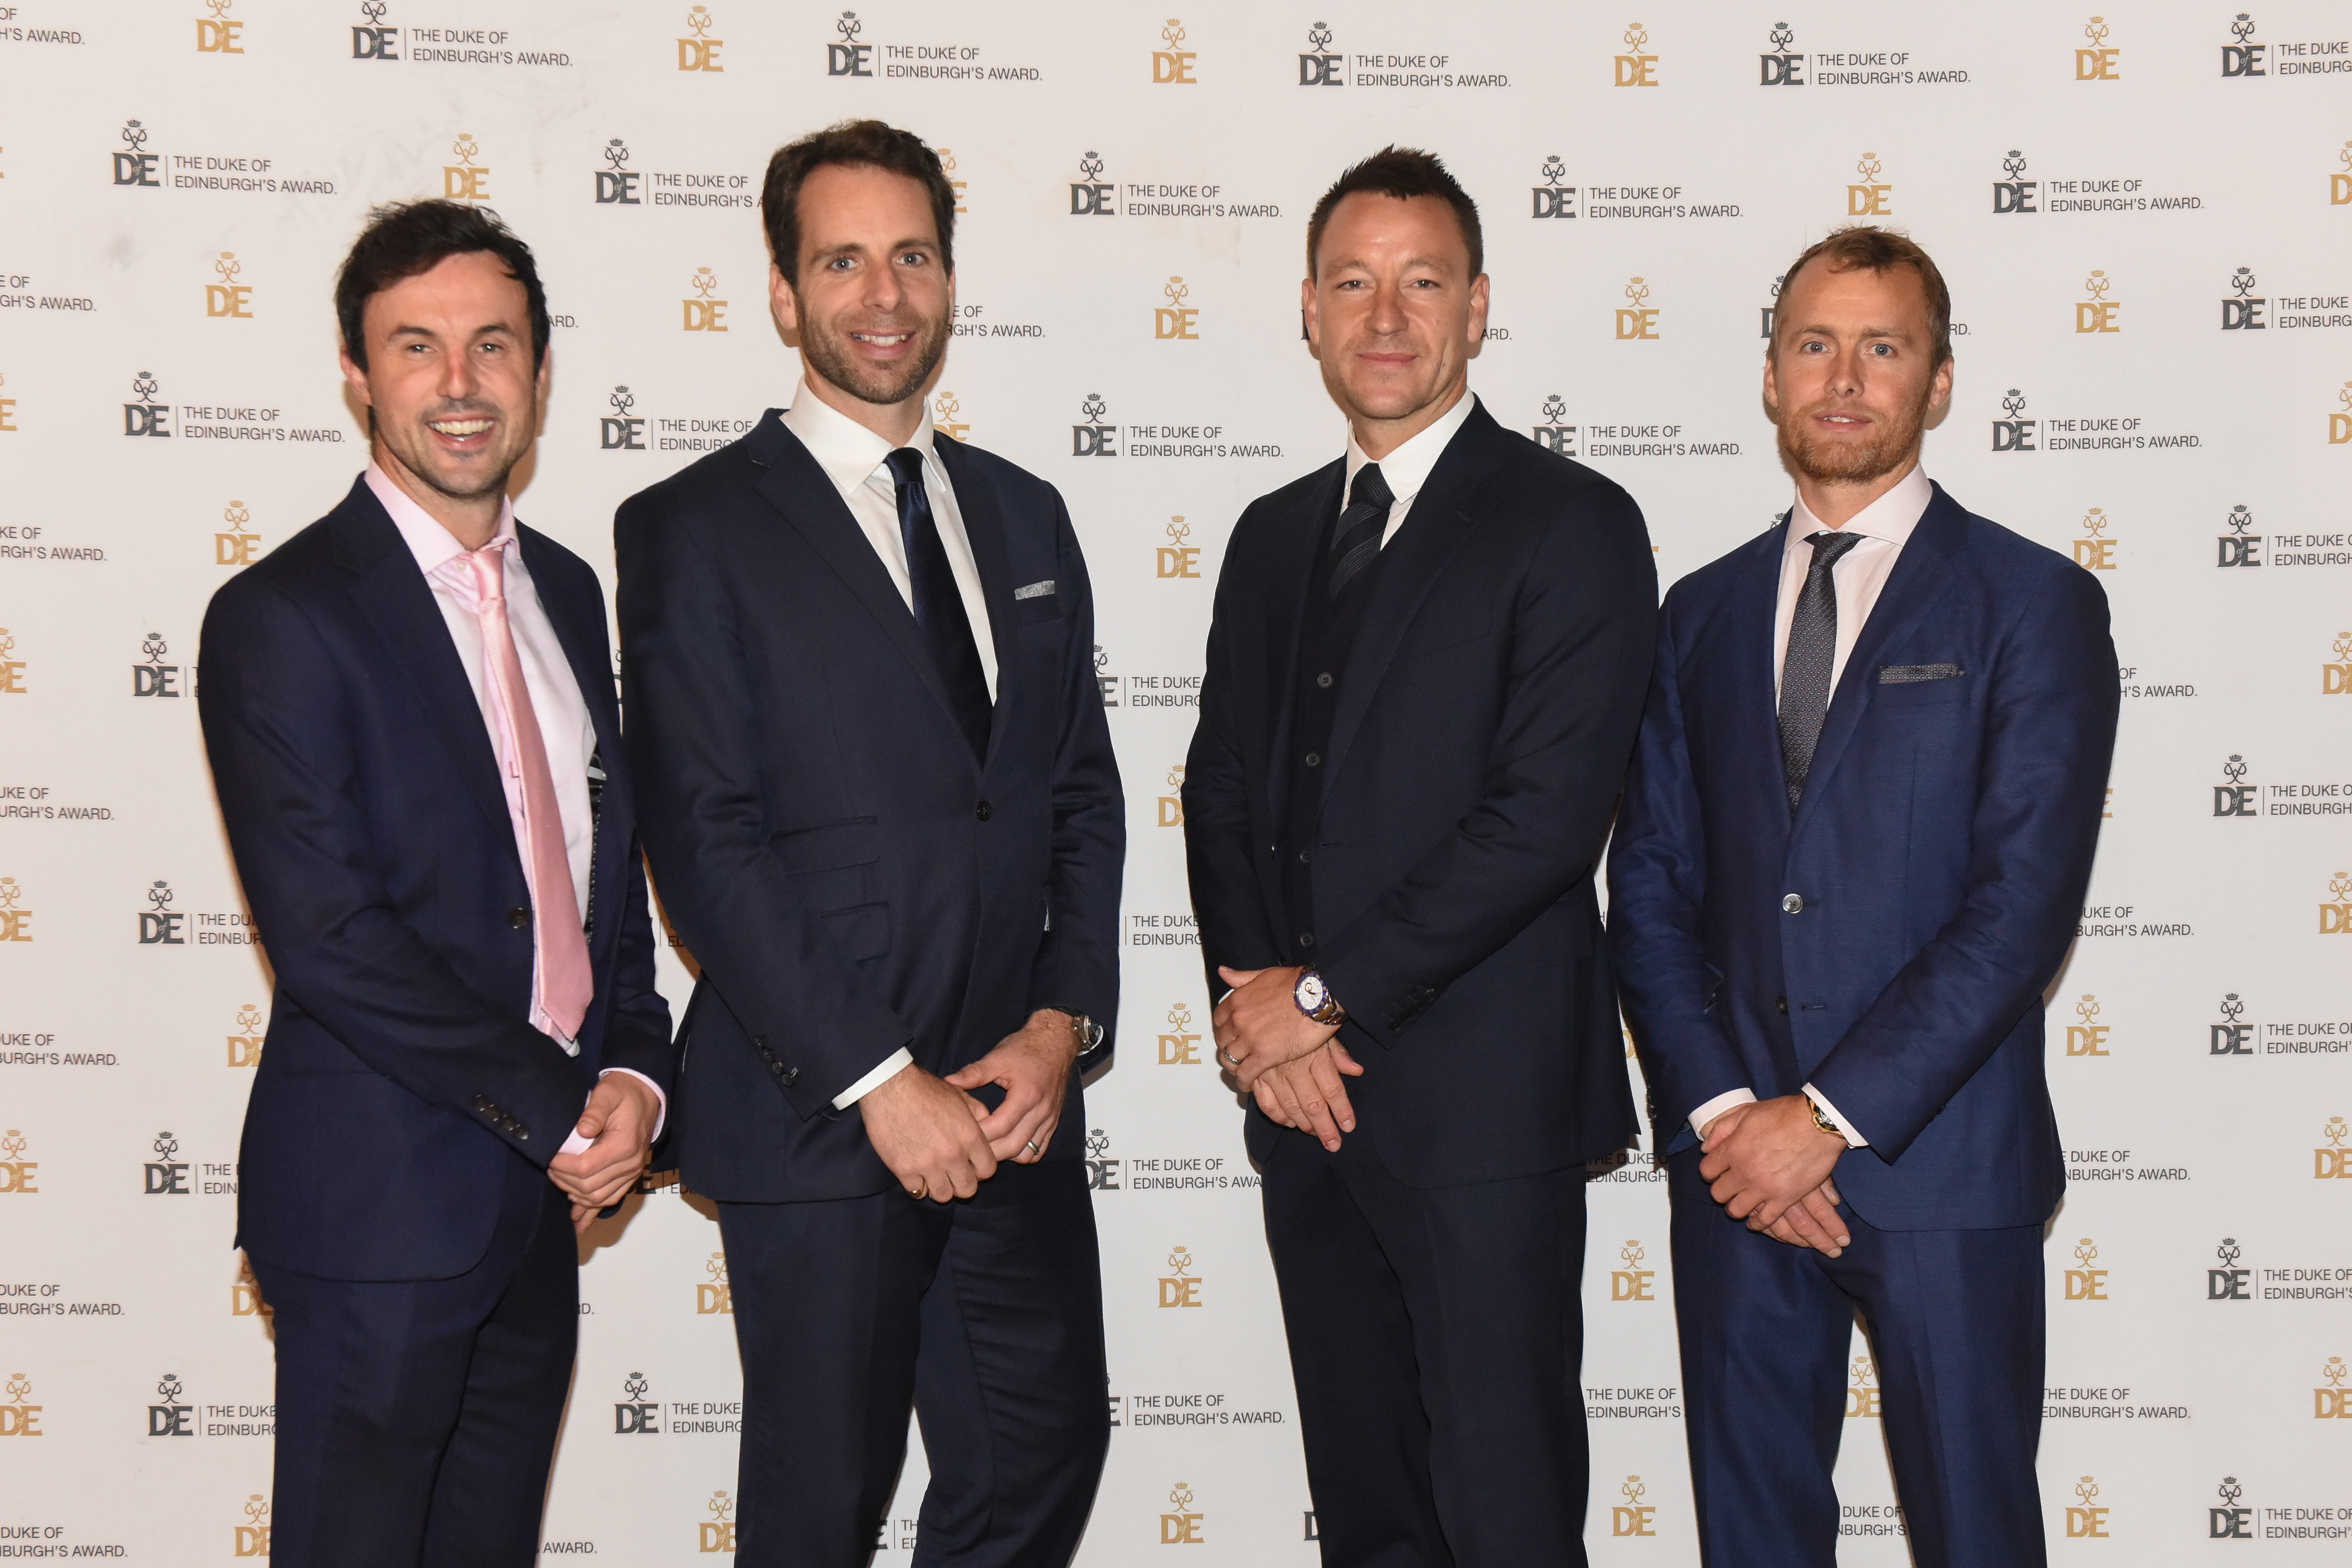 Group photograph at Gold Award Presentation of four male presenters